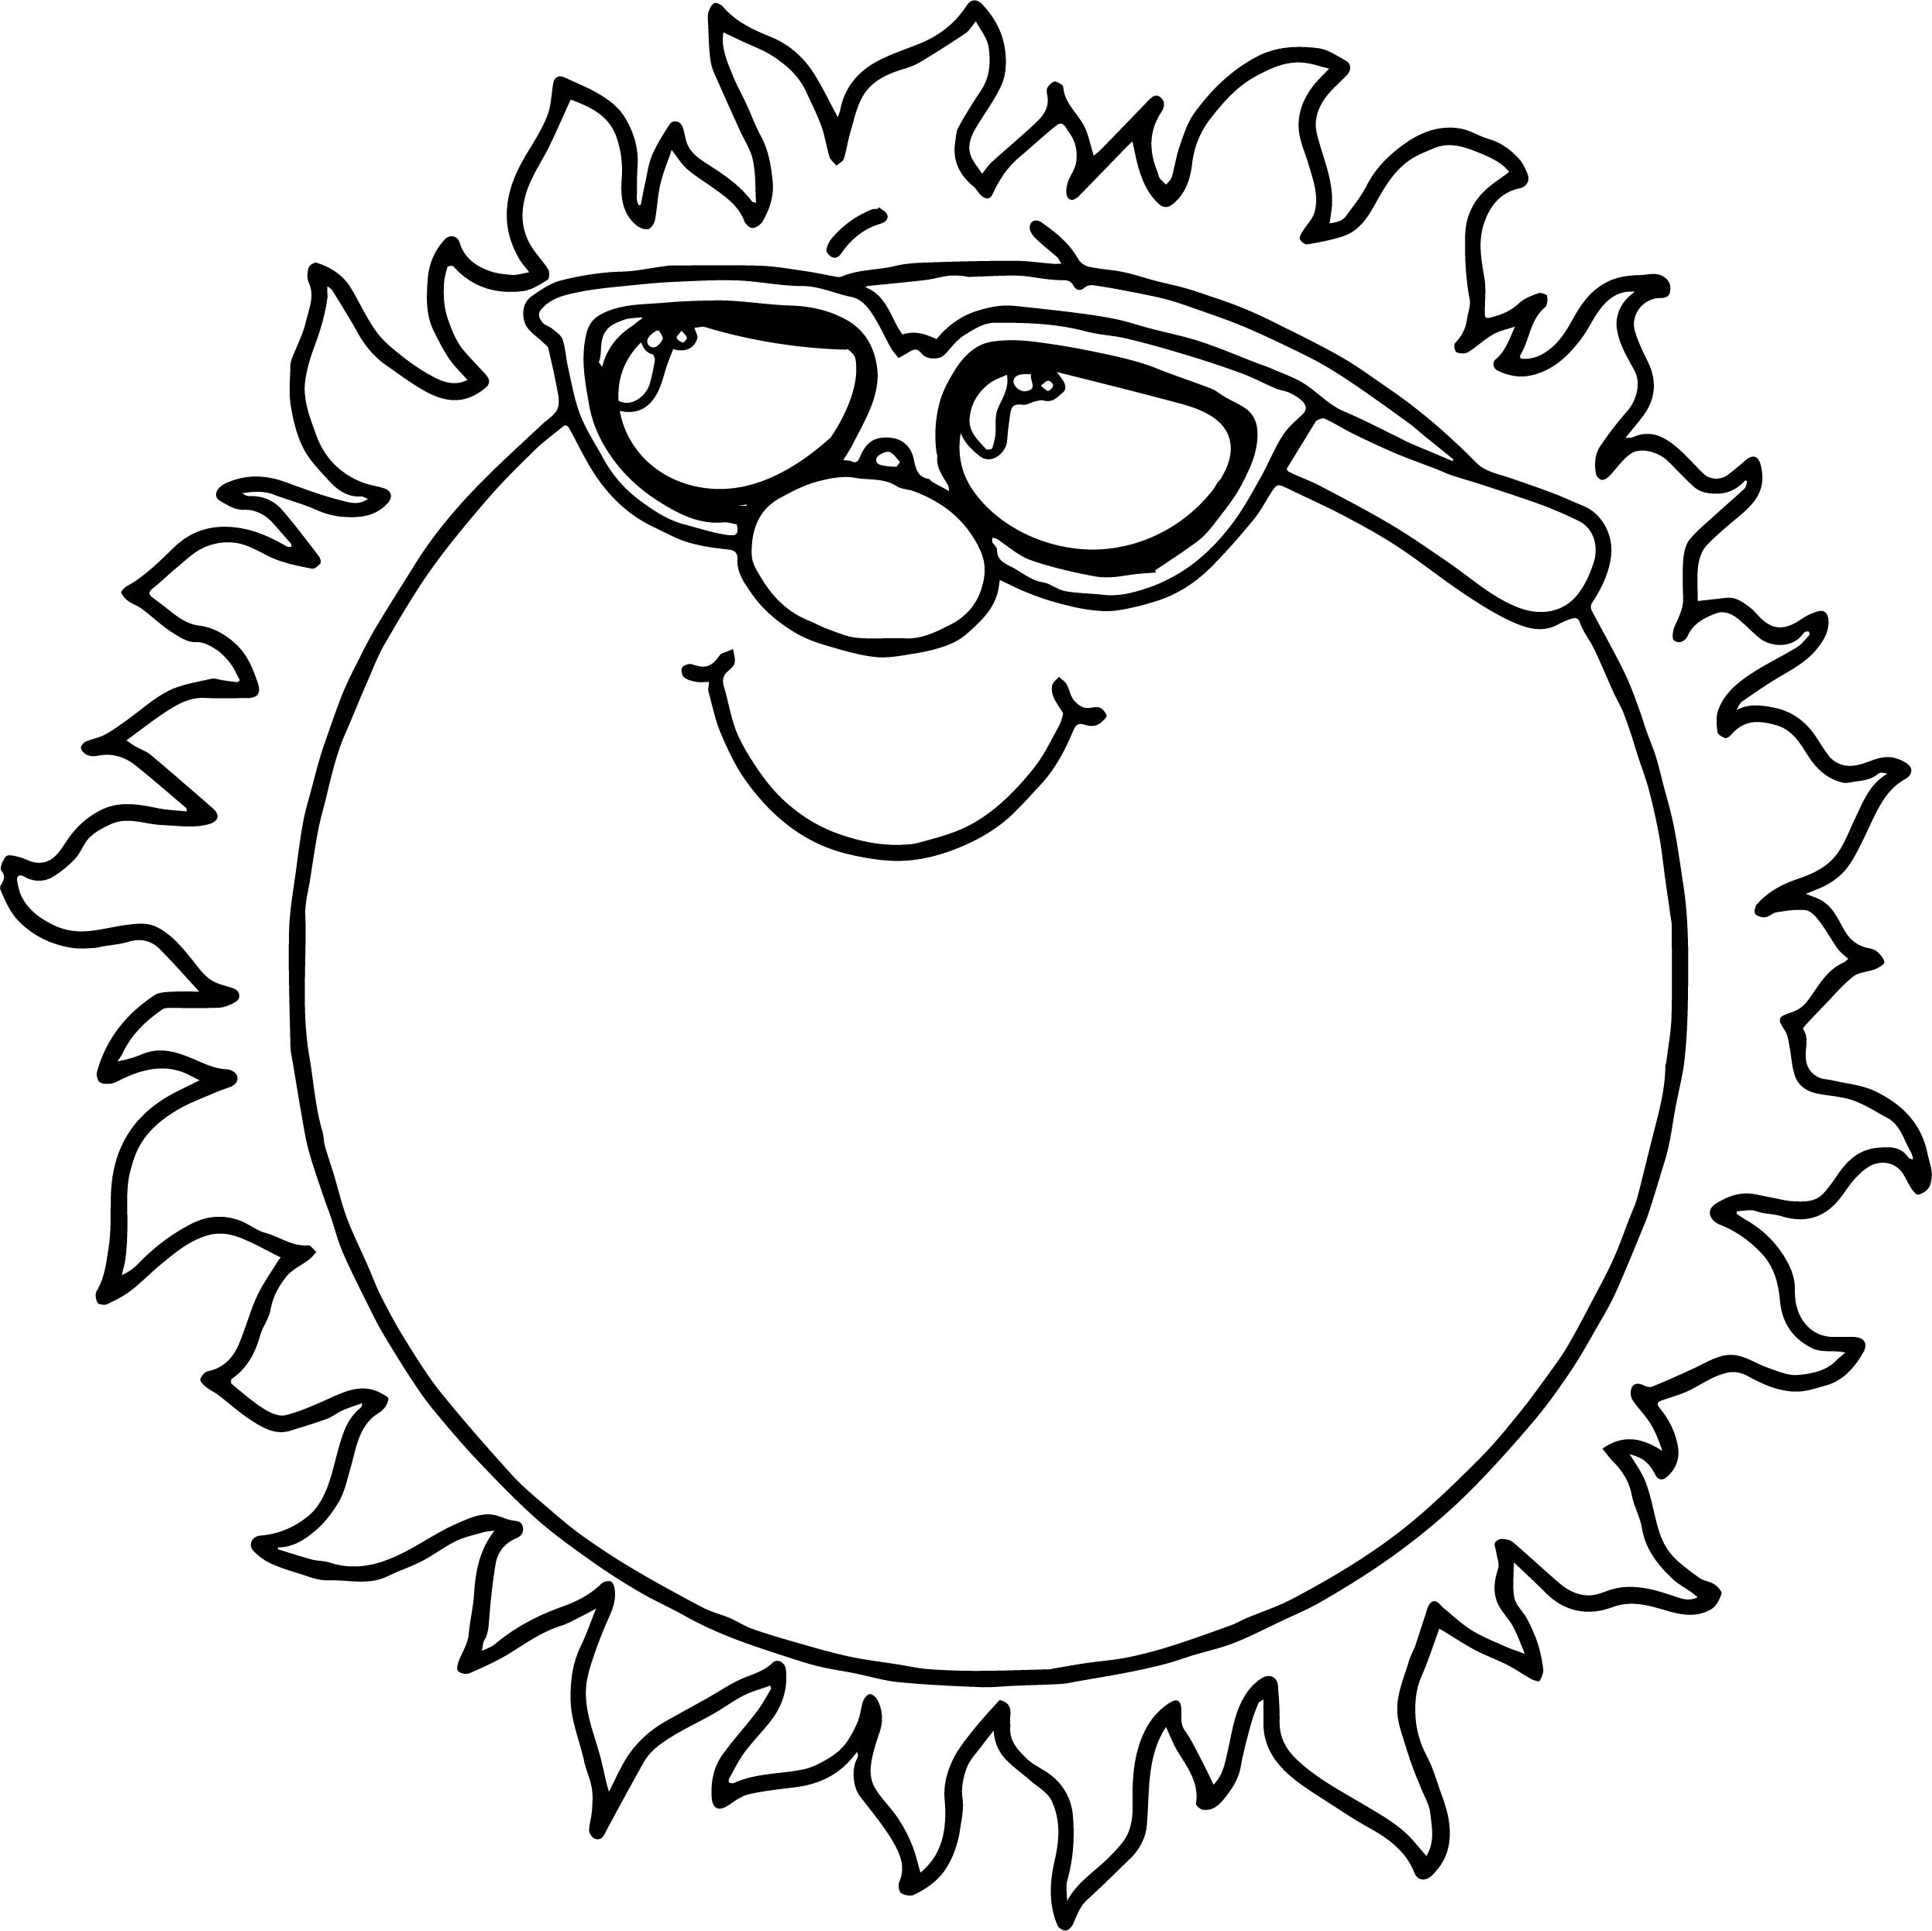 2494x2493 Summer Coloring Pages With Sun For Kids New Contemporary Design